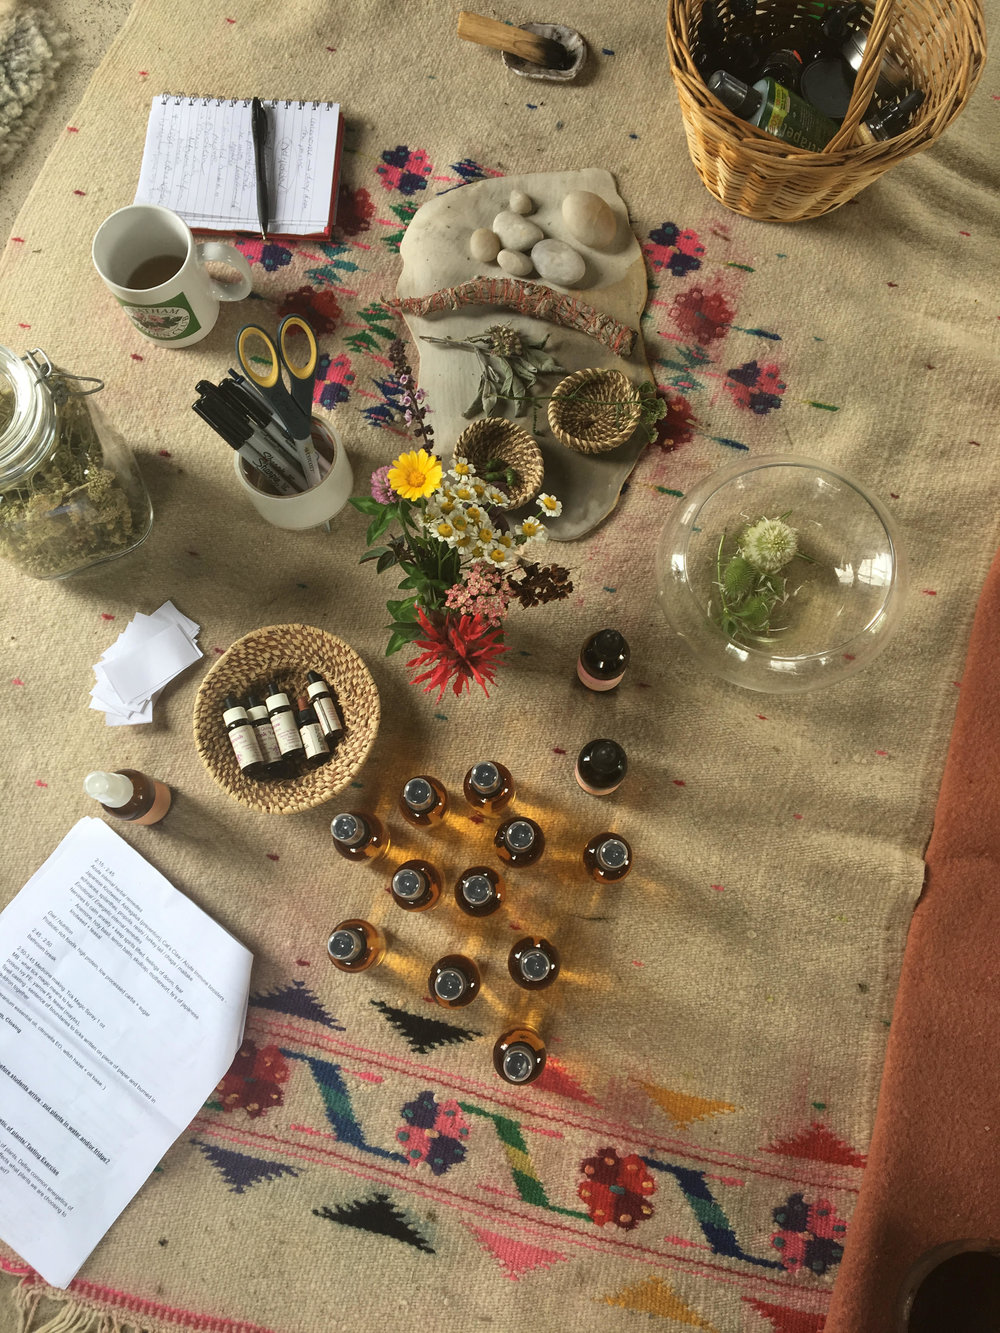 winter wild gather classes - Th 1/11 6-8pm :: Herbal Care for the Home Team at Good Fight Herb Co. herb shop ~ 253 1/2 warren st., hudson, nyGather your squad - be it family (of origin, chosen), your collective house, domestic partners, etc. - and participate in a down home, approachable way to take care of each other with herbs. We'll cultivate tools to promote our agency and self-determination on how we choose to take care. We'll unpack first aid assessment and make medicine that relates to everyday situations. We'll break down emotional labor, holding space for ourselves and the team, and practice tools for creating healthy boundaries. We'll decipher ways we can carve out time for care, and how to engage in this intimacy so that our squad goals are on point! $65 ; RSVP